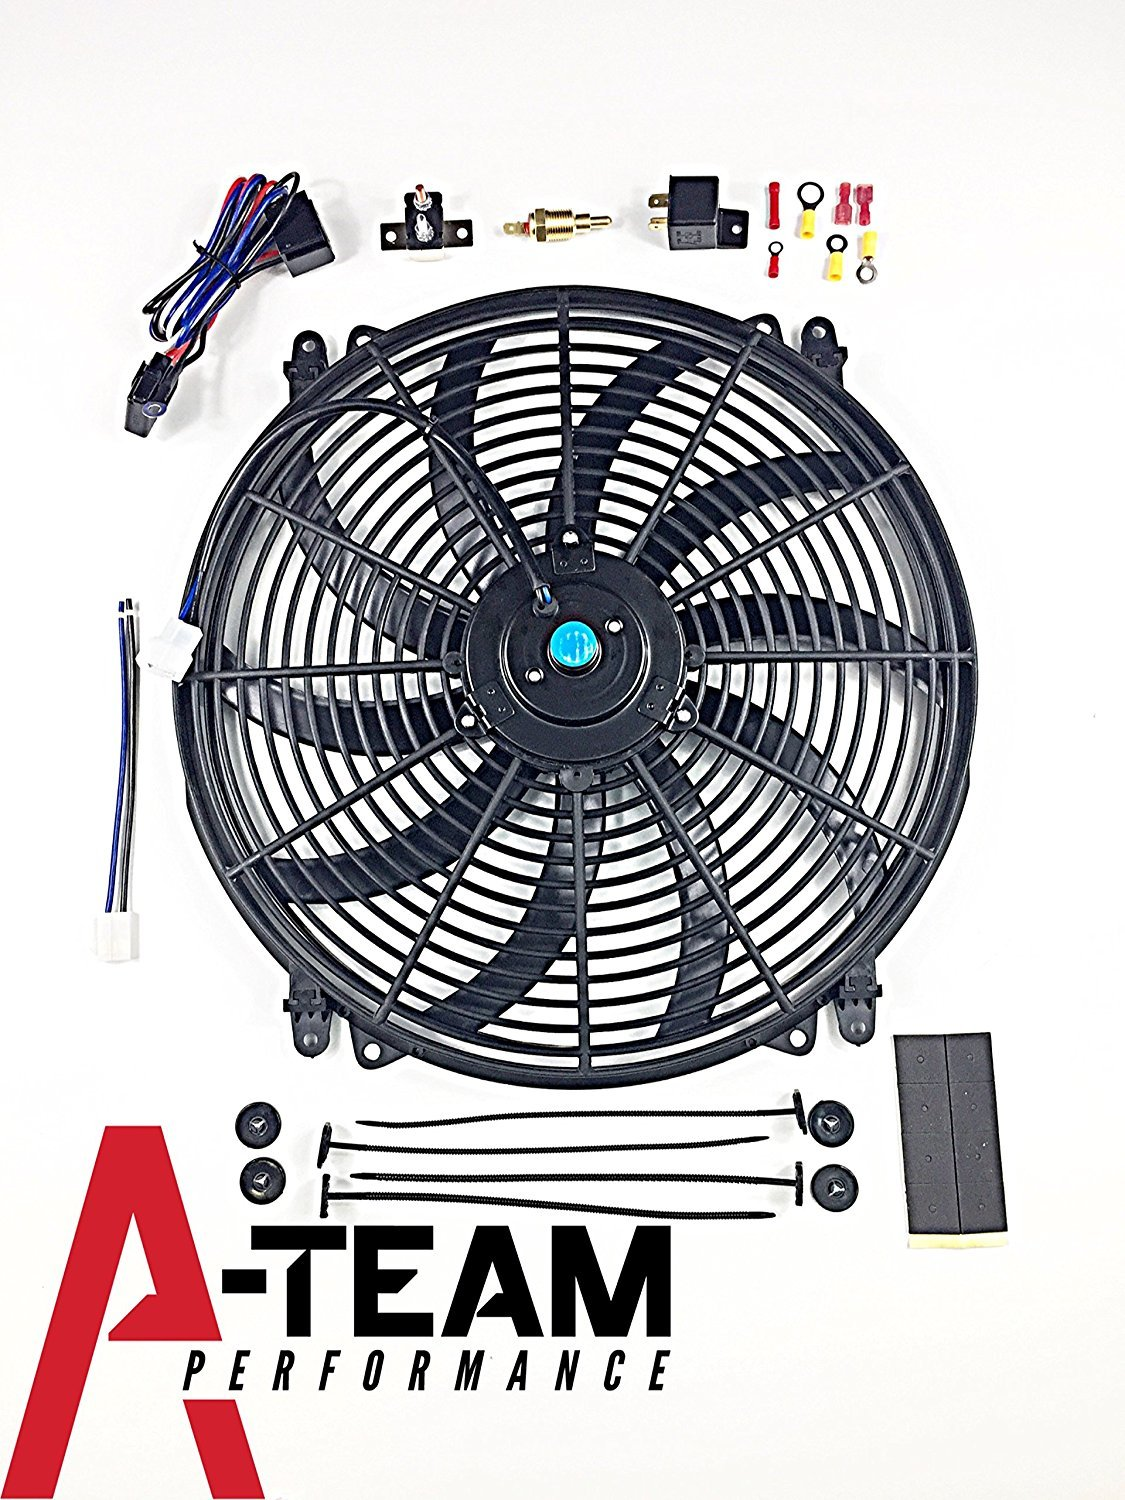 A Team Performance 140041 16 Heavy Duty 12v Radiator Electric Fan Relay Wiring Diagram As Well Wide Curved S Blade Thermostat Kit 3000 Cfm Reversible Push Or Pull With